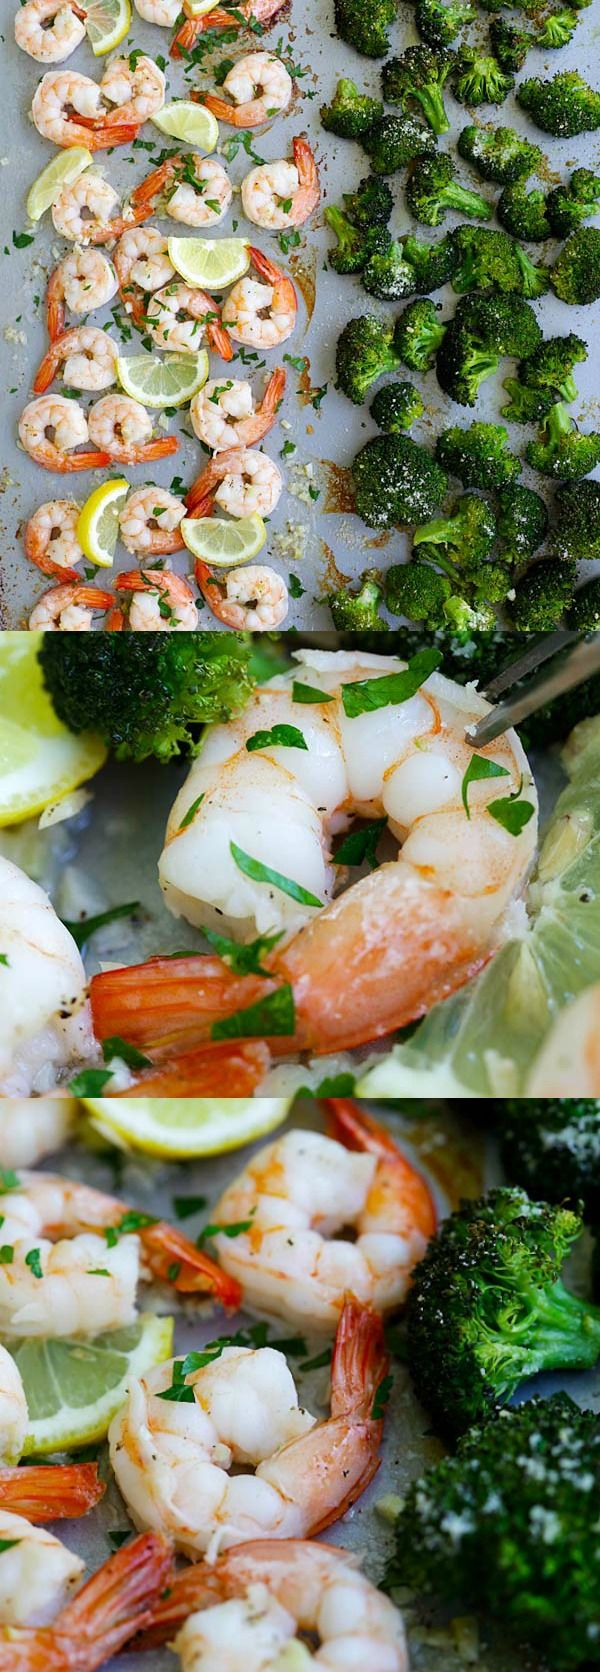 Sheet Pan Shrimp Scampi and Roasted Broccoli – the best shrimp scampi and Parmesan broccoli in one pan. So easy, delicious and dinner takes 20 mins to make | rasamalaysia.com